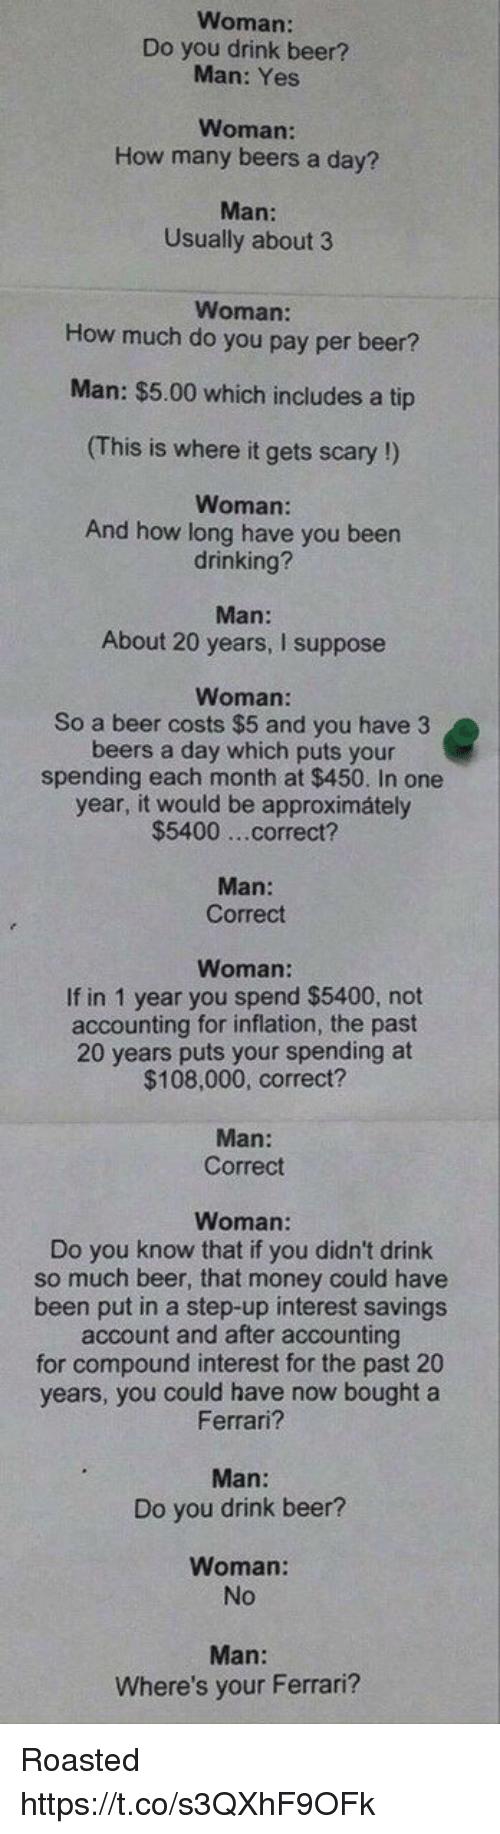 Beer, Blackpeopletwitter, and Drinking: Woman:  Do you drink beer?  Man: Yes  Woman  How many beers a day?  Man:  Usually about 3  Woman:  How much do you pay per beer?  Man: $5.00 which includes a tip  (This is where it gets scary !)  Woman:  And how long have you been  drinking?  Man:  About 20 years, I suppose  Woman:  So a beer costs $5 and you have 3  beers a day which puts your  spending each month at $450. In one  year, it would be approximátely  $5400 ...correct?  Man:  Correct  Woman:  If in 1 year you spend $5400, not  accounting for inflation, the past  20 years puts your spending at  $108,000, correct?  Man:  Correct  Woman  Do you know that if you didn't drink  so much beer, that money could have  been put in a step-up interest savings  account and after accounting  for compound interest for the past 20  years, you could have now bought a  Ferrari?  Man:  Do you drink beer?  Woman:  No  Where's your Ferrari? Roasted https://t.co/s3QXhF9OFk